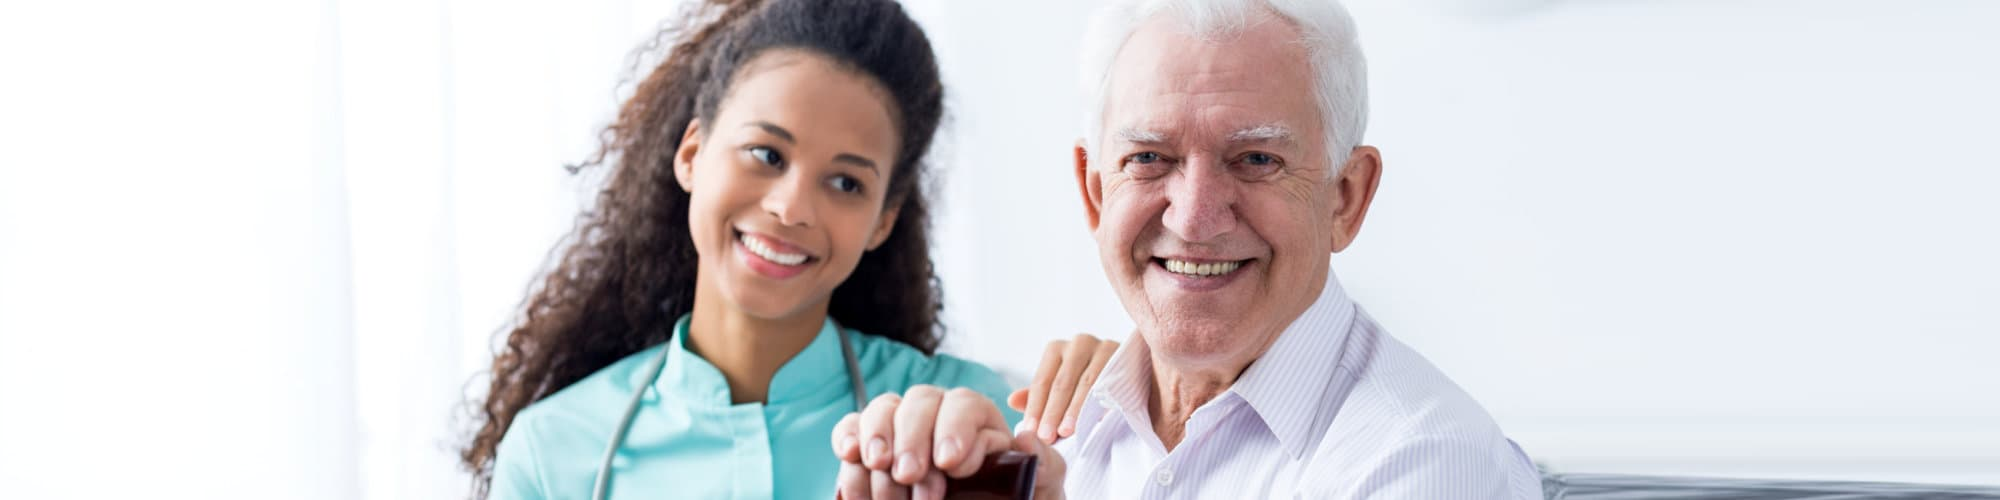 happy nurse taking care of older smiling man